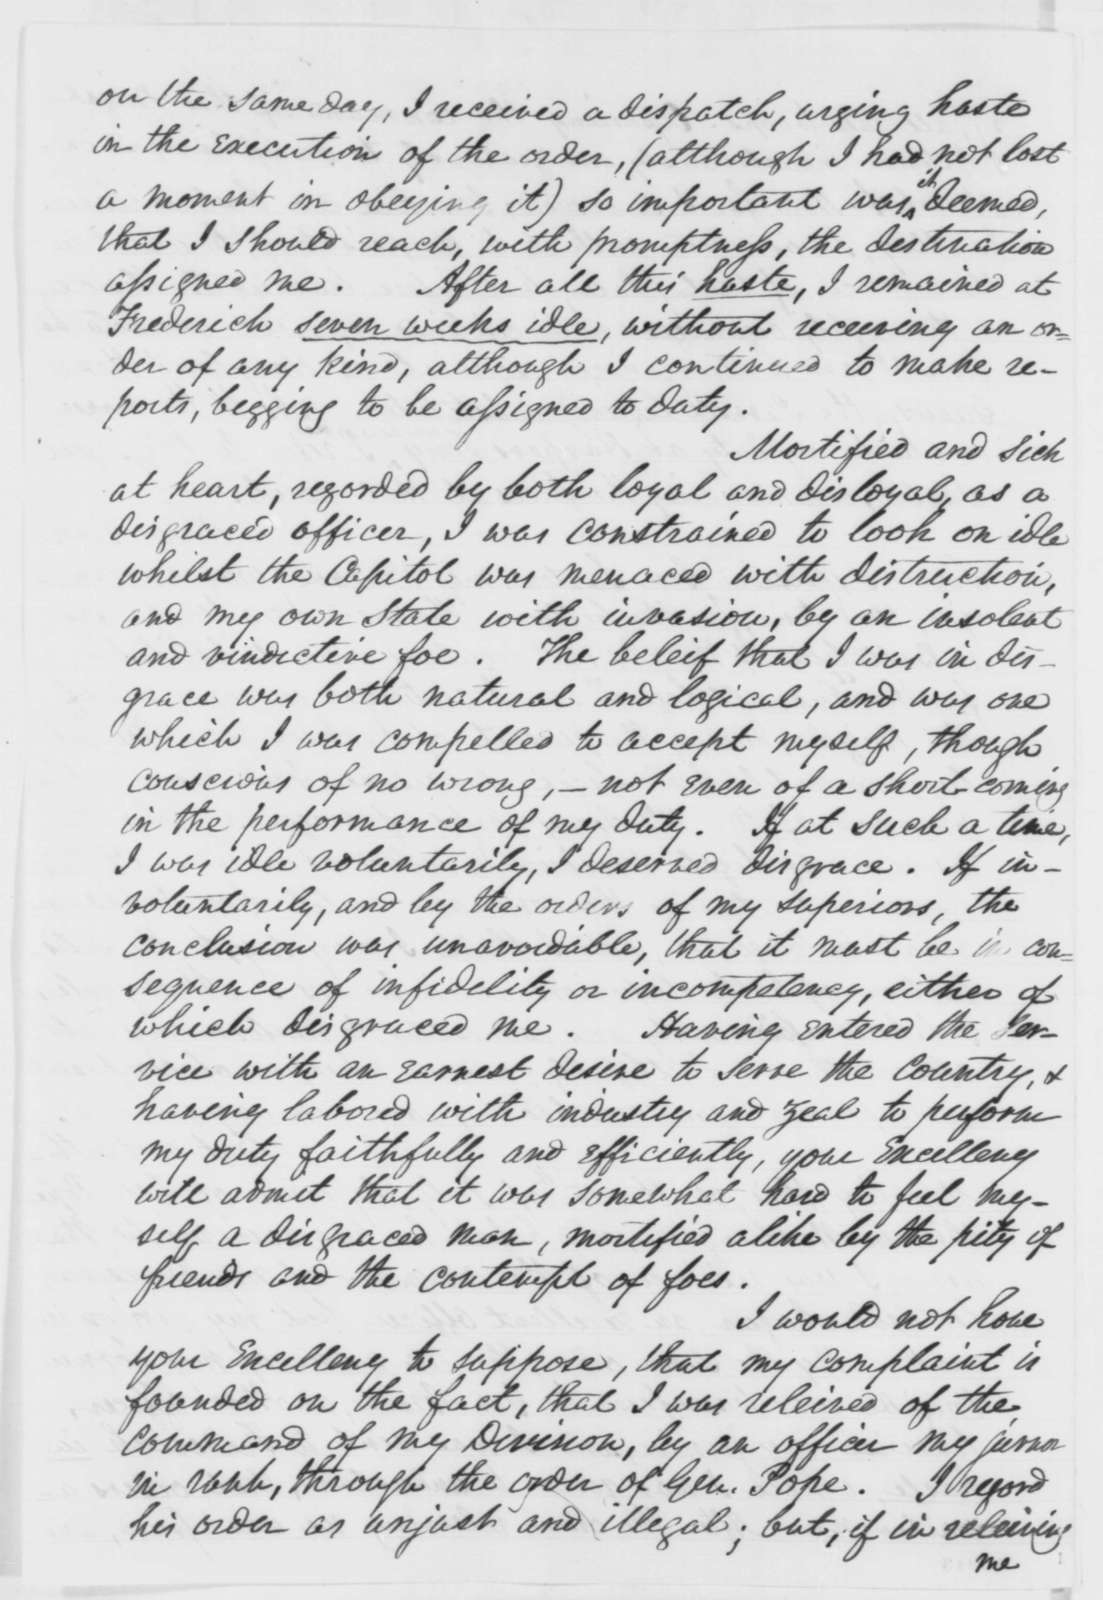 James Cooper to Abraham Lincoln, Thursday, December 04, 1862  (Seeks higher command)